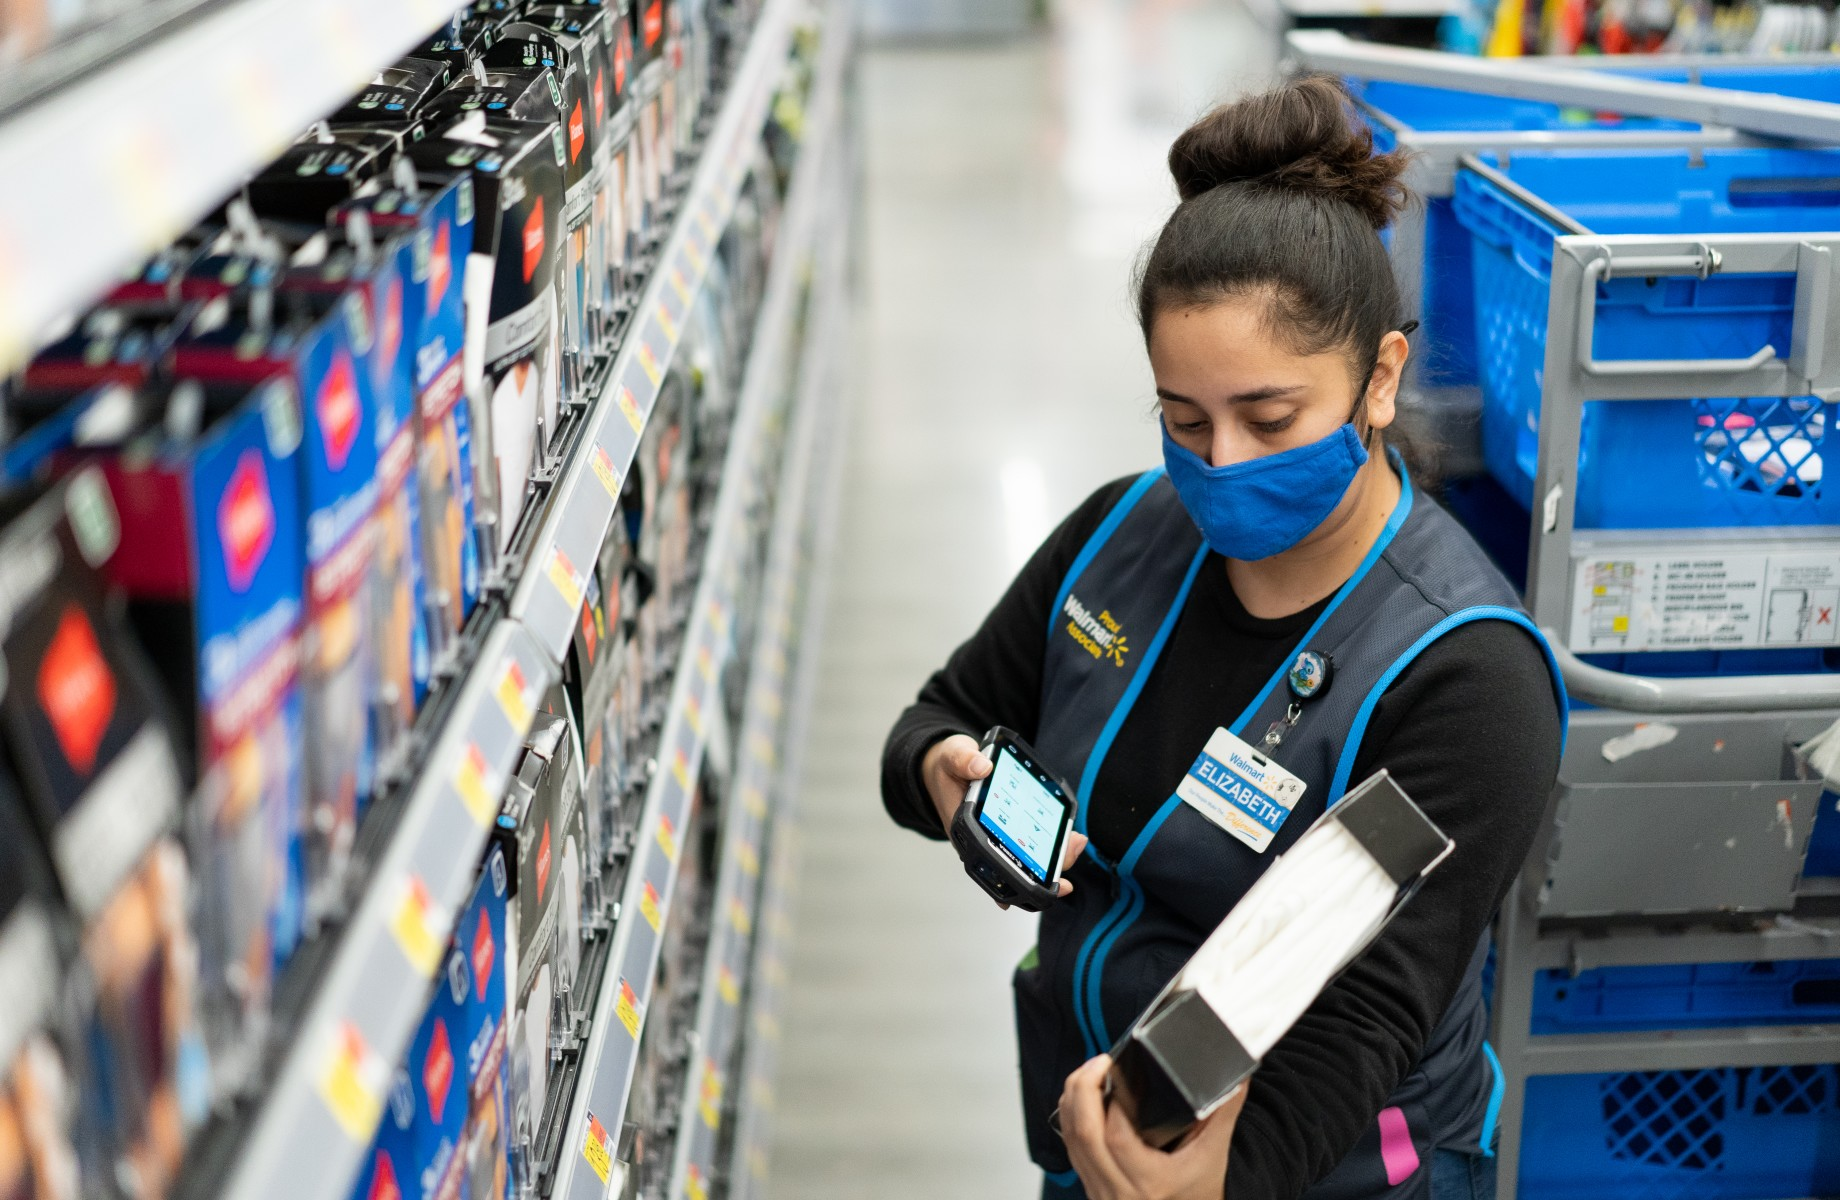 Walmart is repurposing four stores as experimental locations for training employees on how to better meet the growing demands of digital shopping. (Walmart)